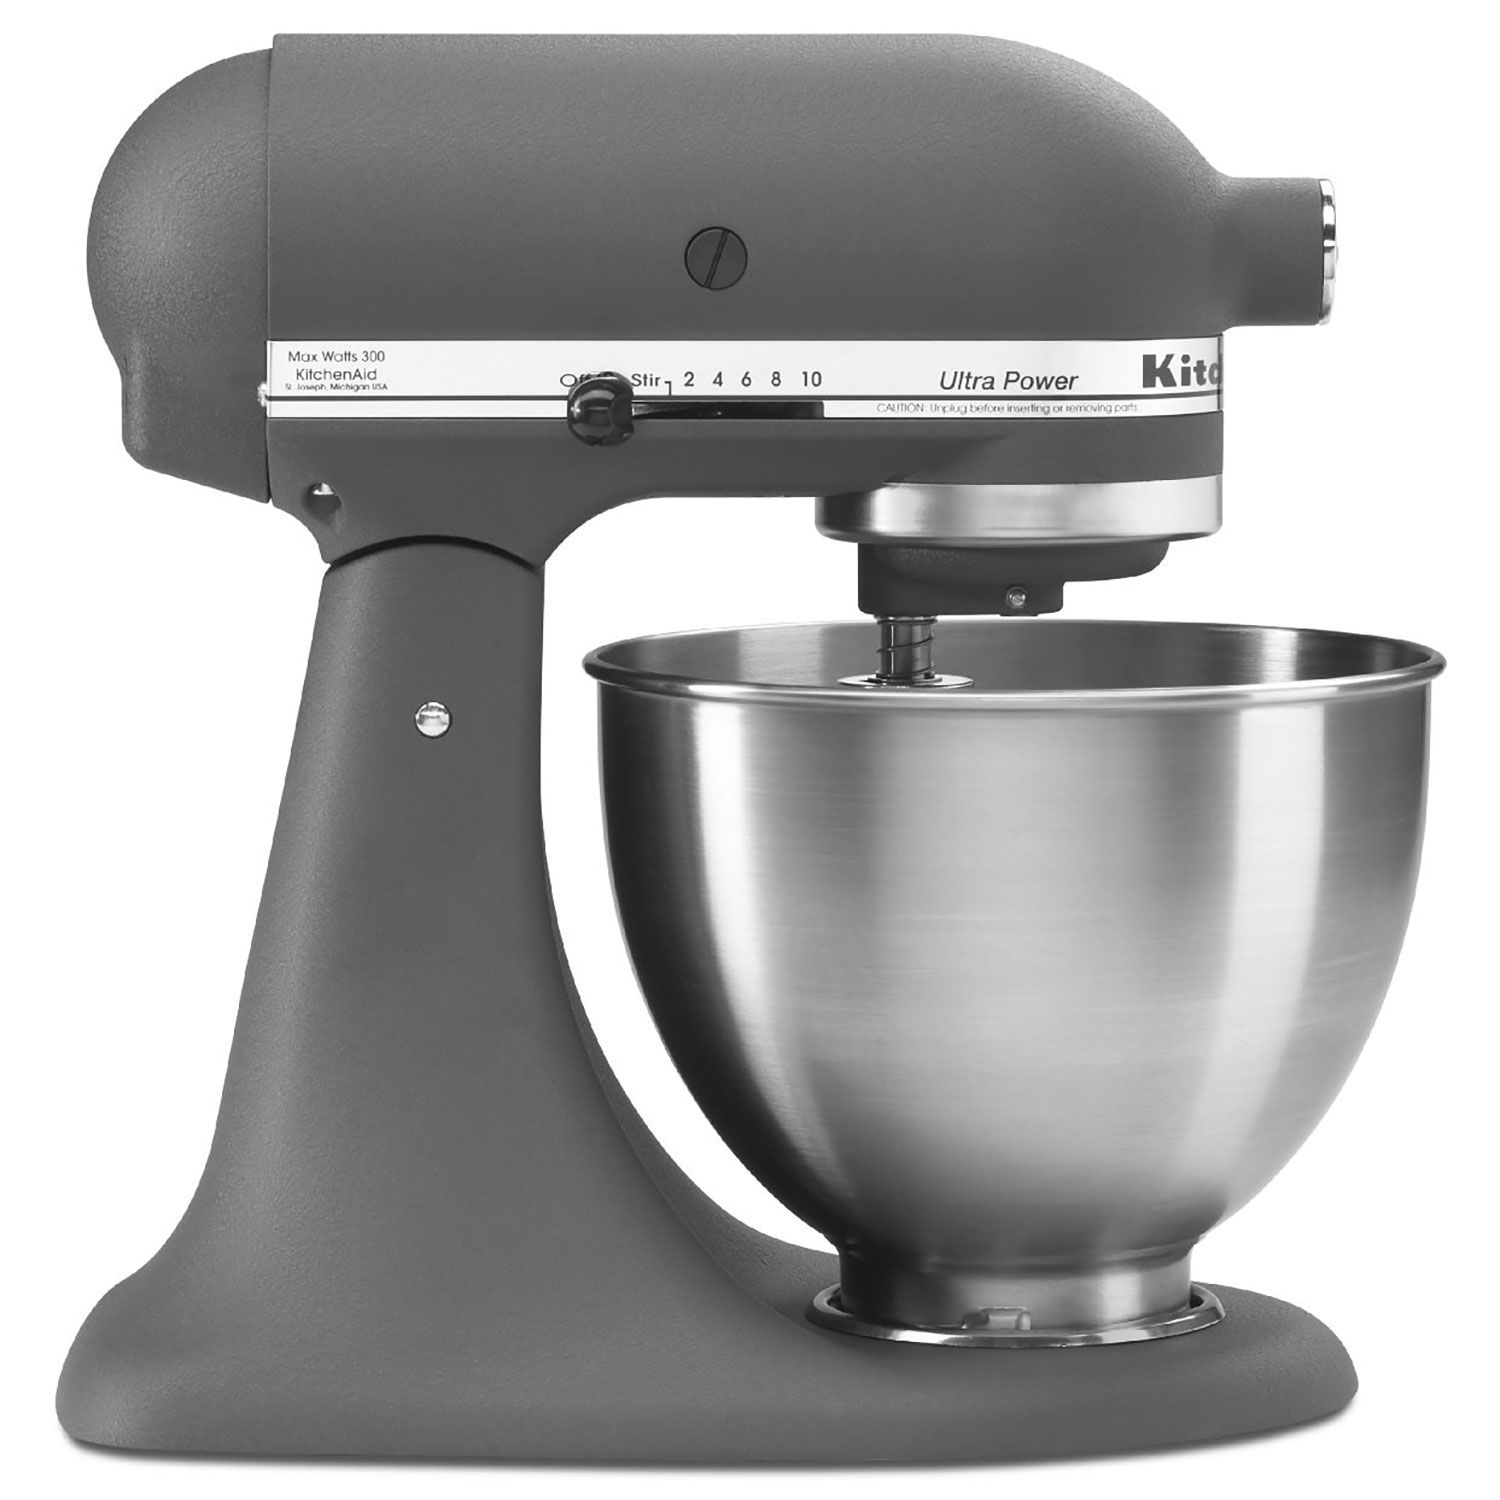 Kitchenaid 4.5 Quart Tilt Stand Mixer - Gray